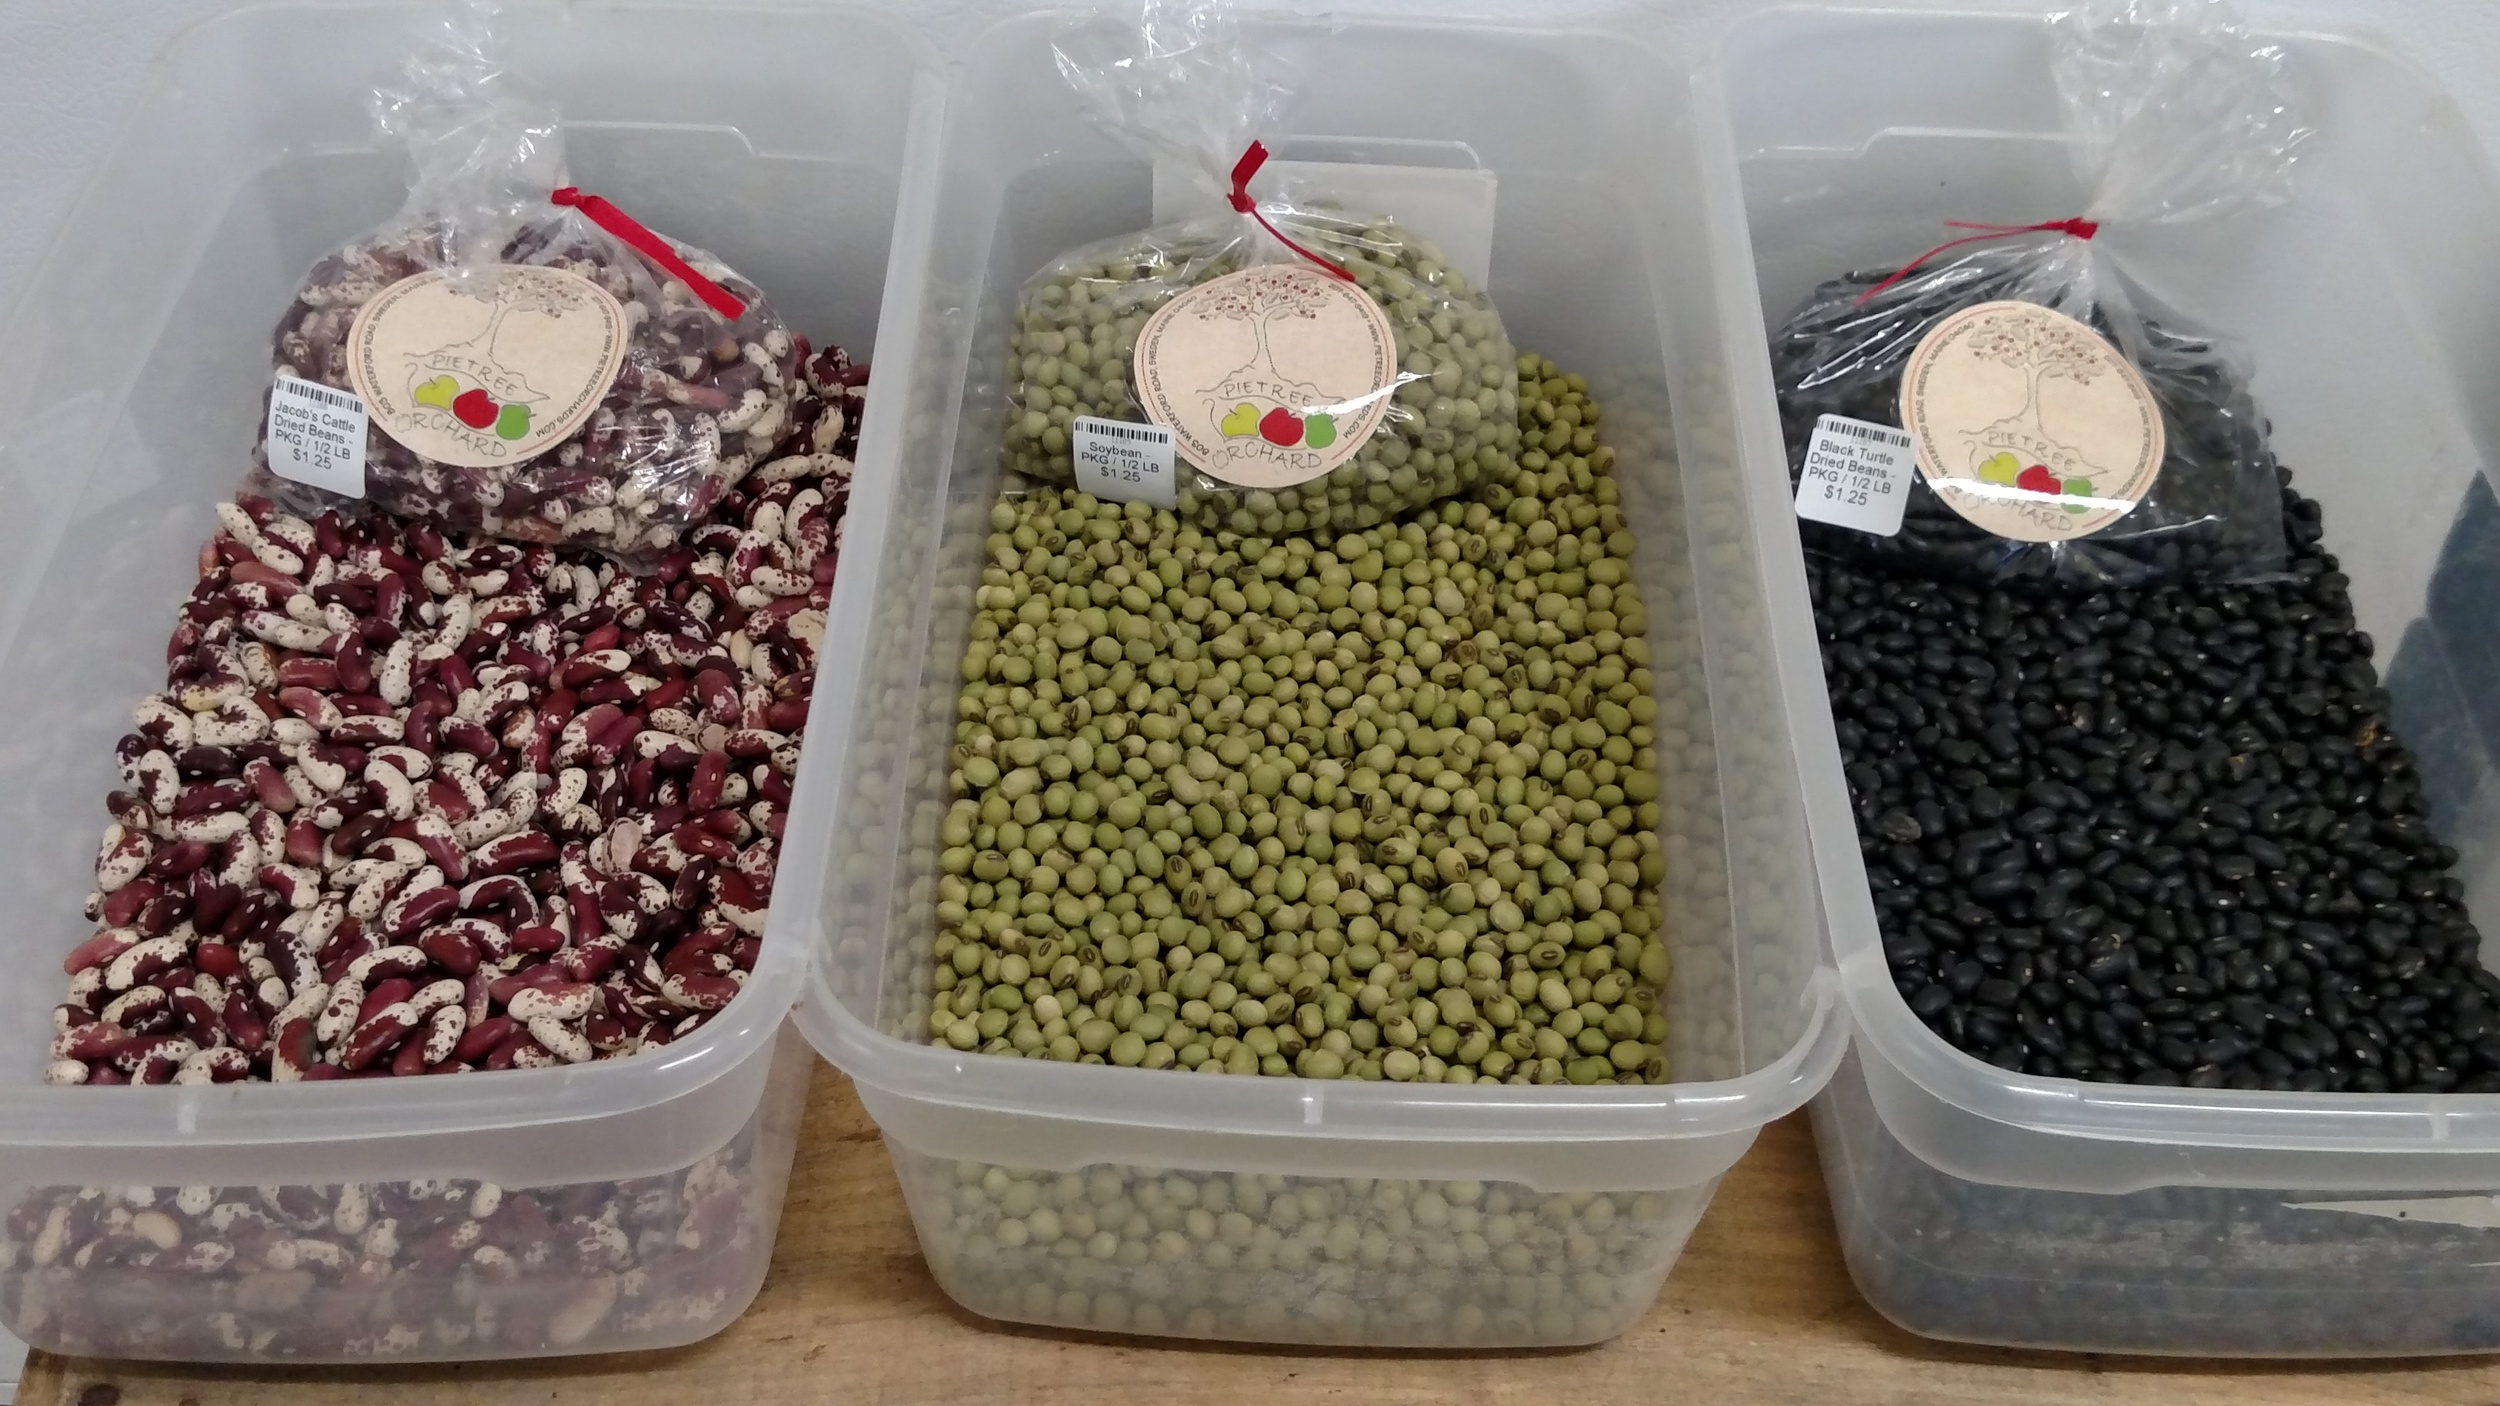 Jacob's Cattle Beans, Soy Beans, & Black Turtle Beans Grown At Pietree!